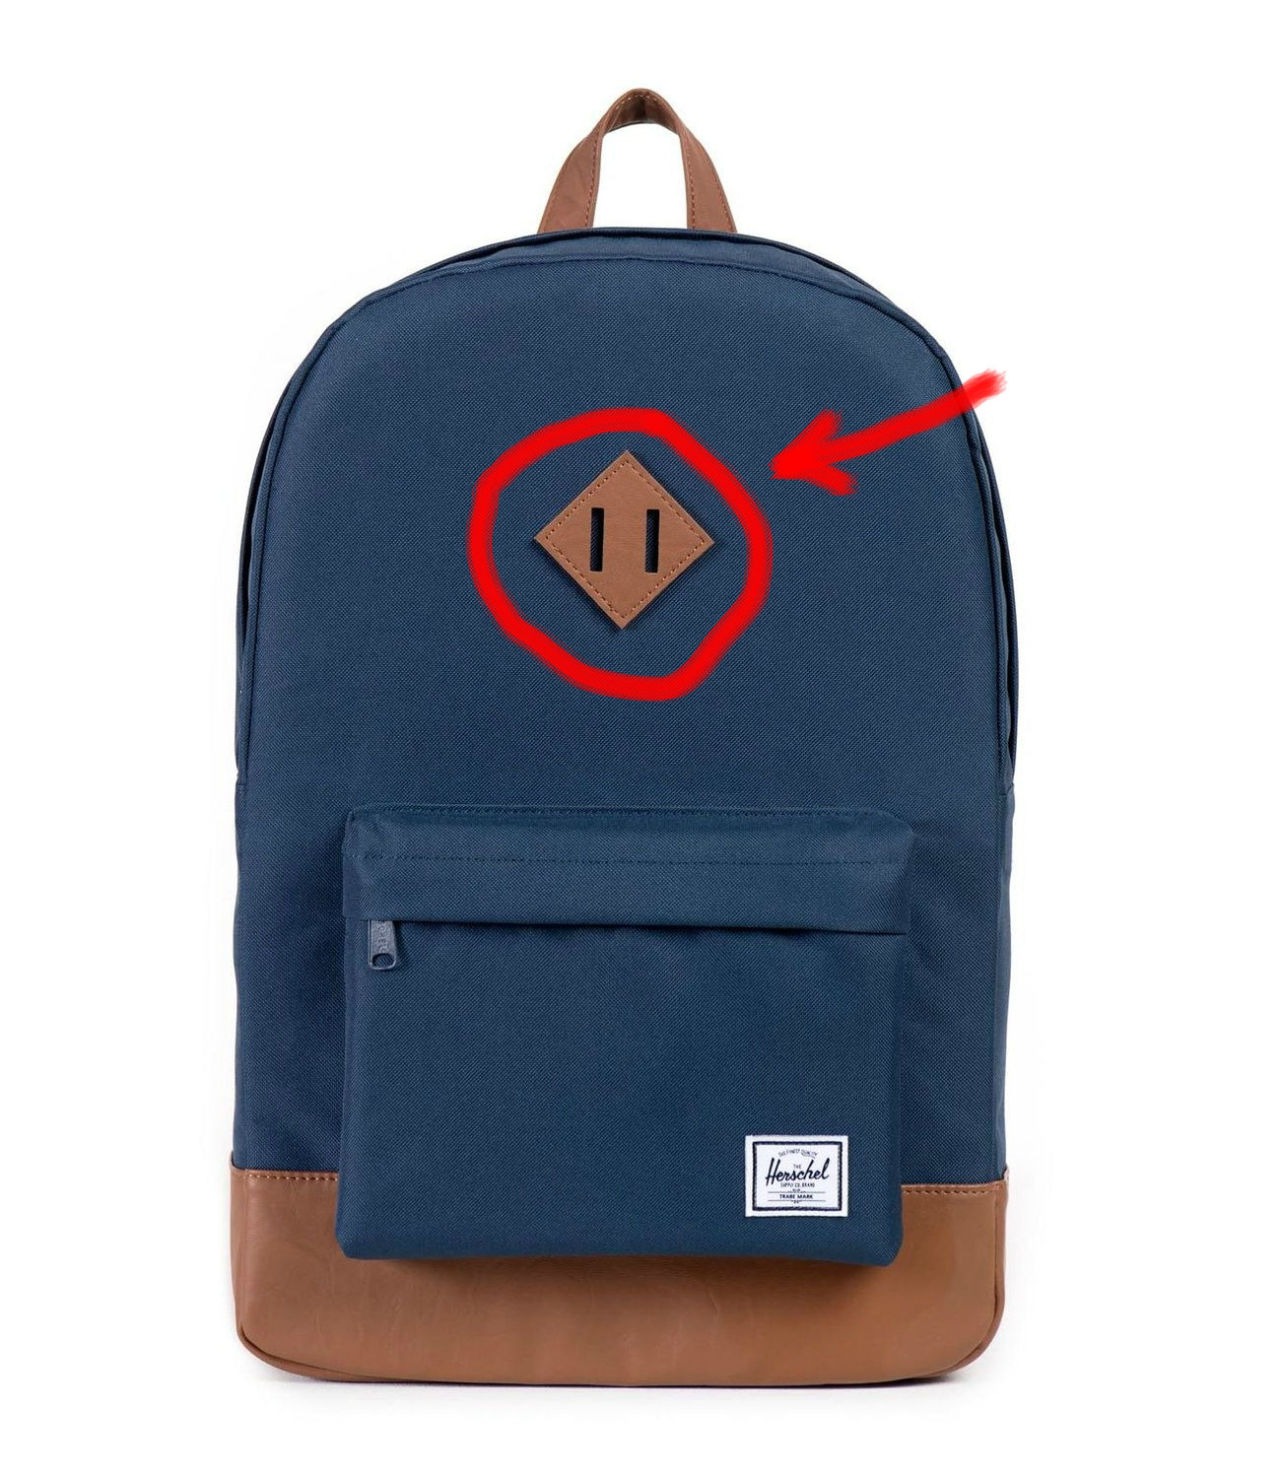 Heres What Those Weird Diamonds On Rucksacks Are Really For Pin Desulfator Circuit Diagram Image Search Results Pinterest